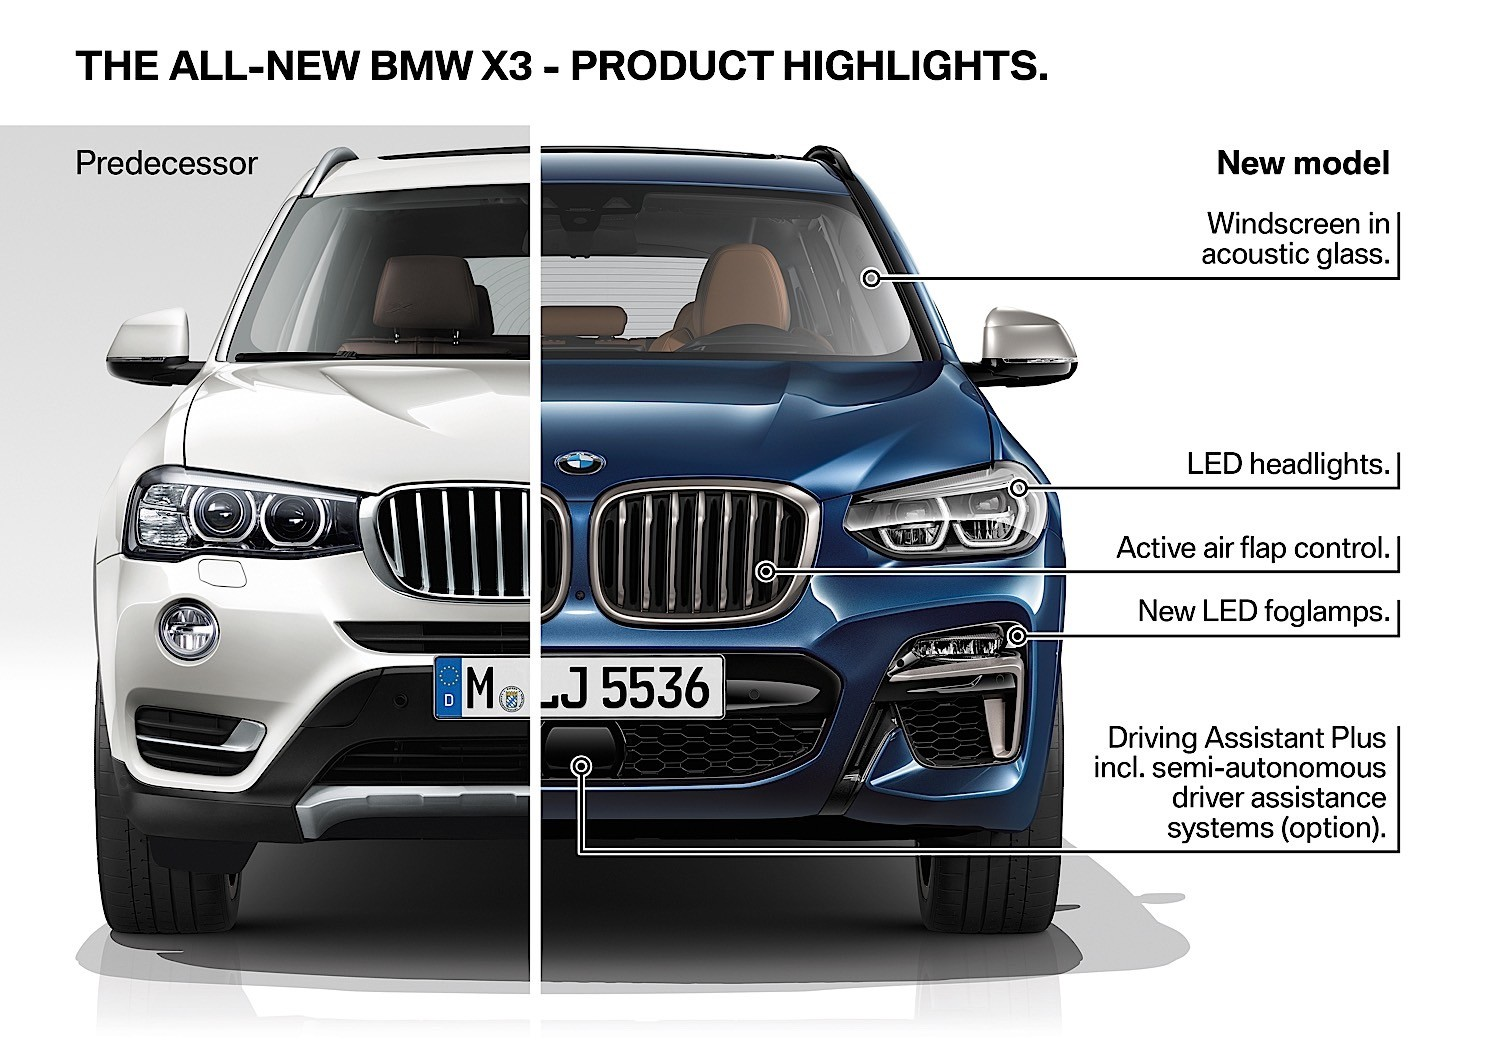 2018 bmw x3 g01 goes official transitions from sav to suv autoevolution. Black Bedroom Furniture Sets. Home Design Ideas